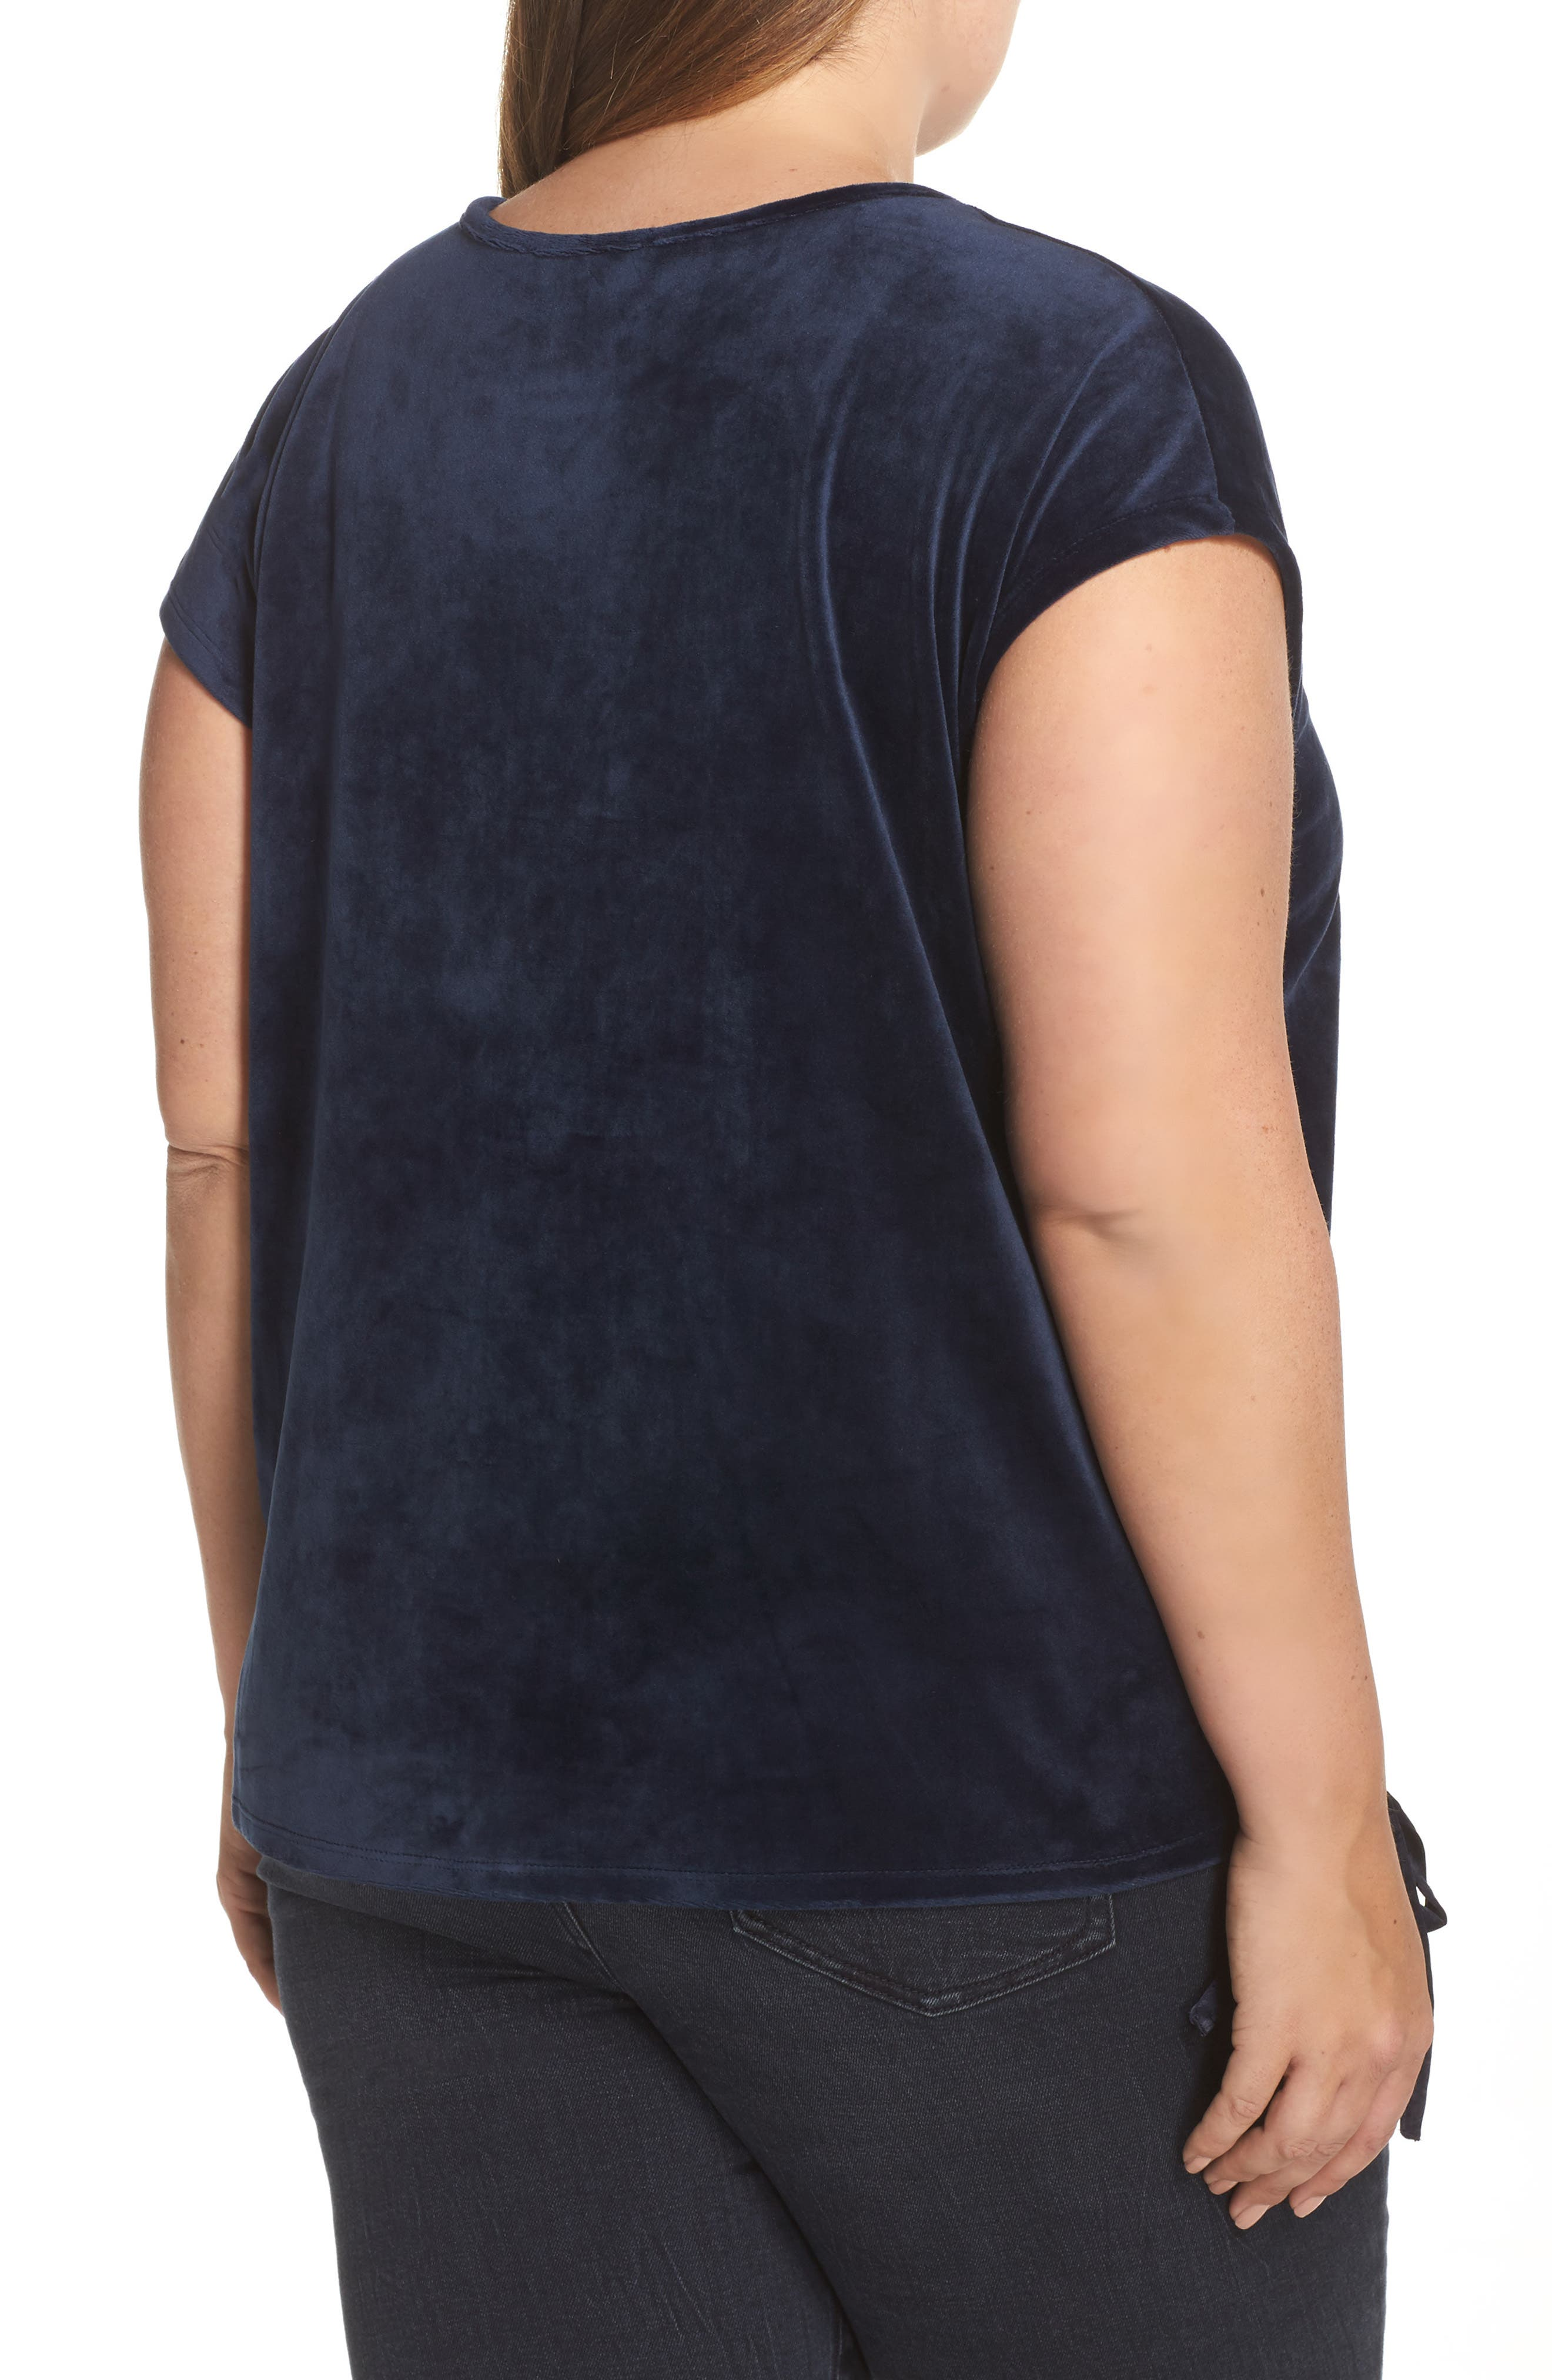 Alternate Image 2  - Two by Vince Camuto Side Tie Velour Top (Plus Size)